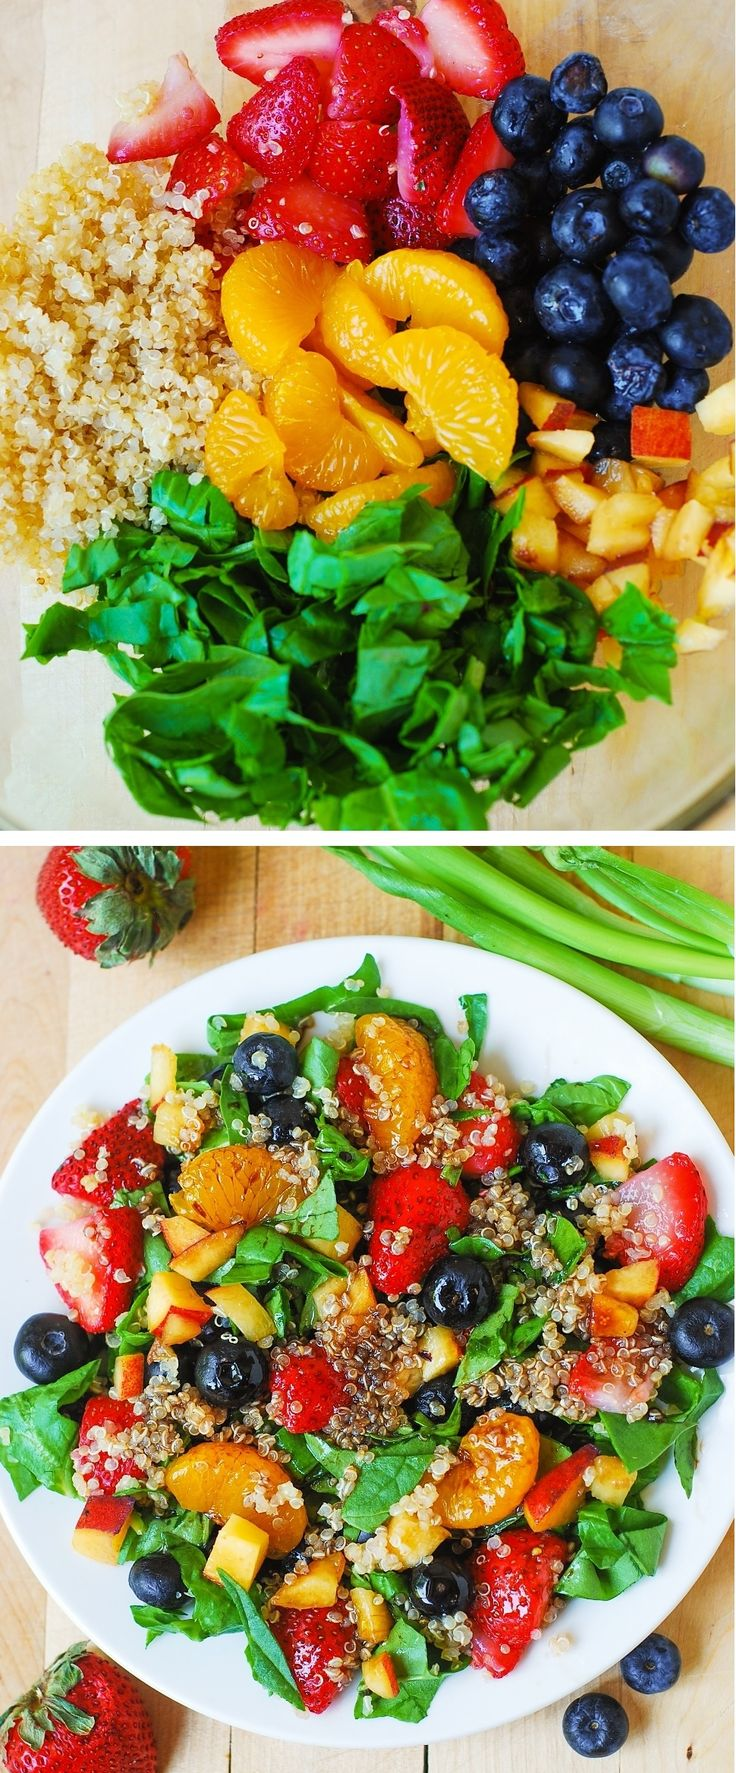 Quinoa salad with spinach, strawberries, blueberries, and peaches, in a homemade Balsamic vinaigrette dressing. #vegan #glutenfree